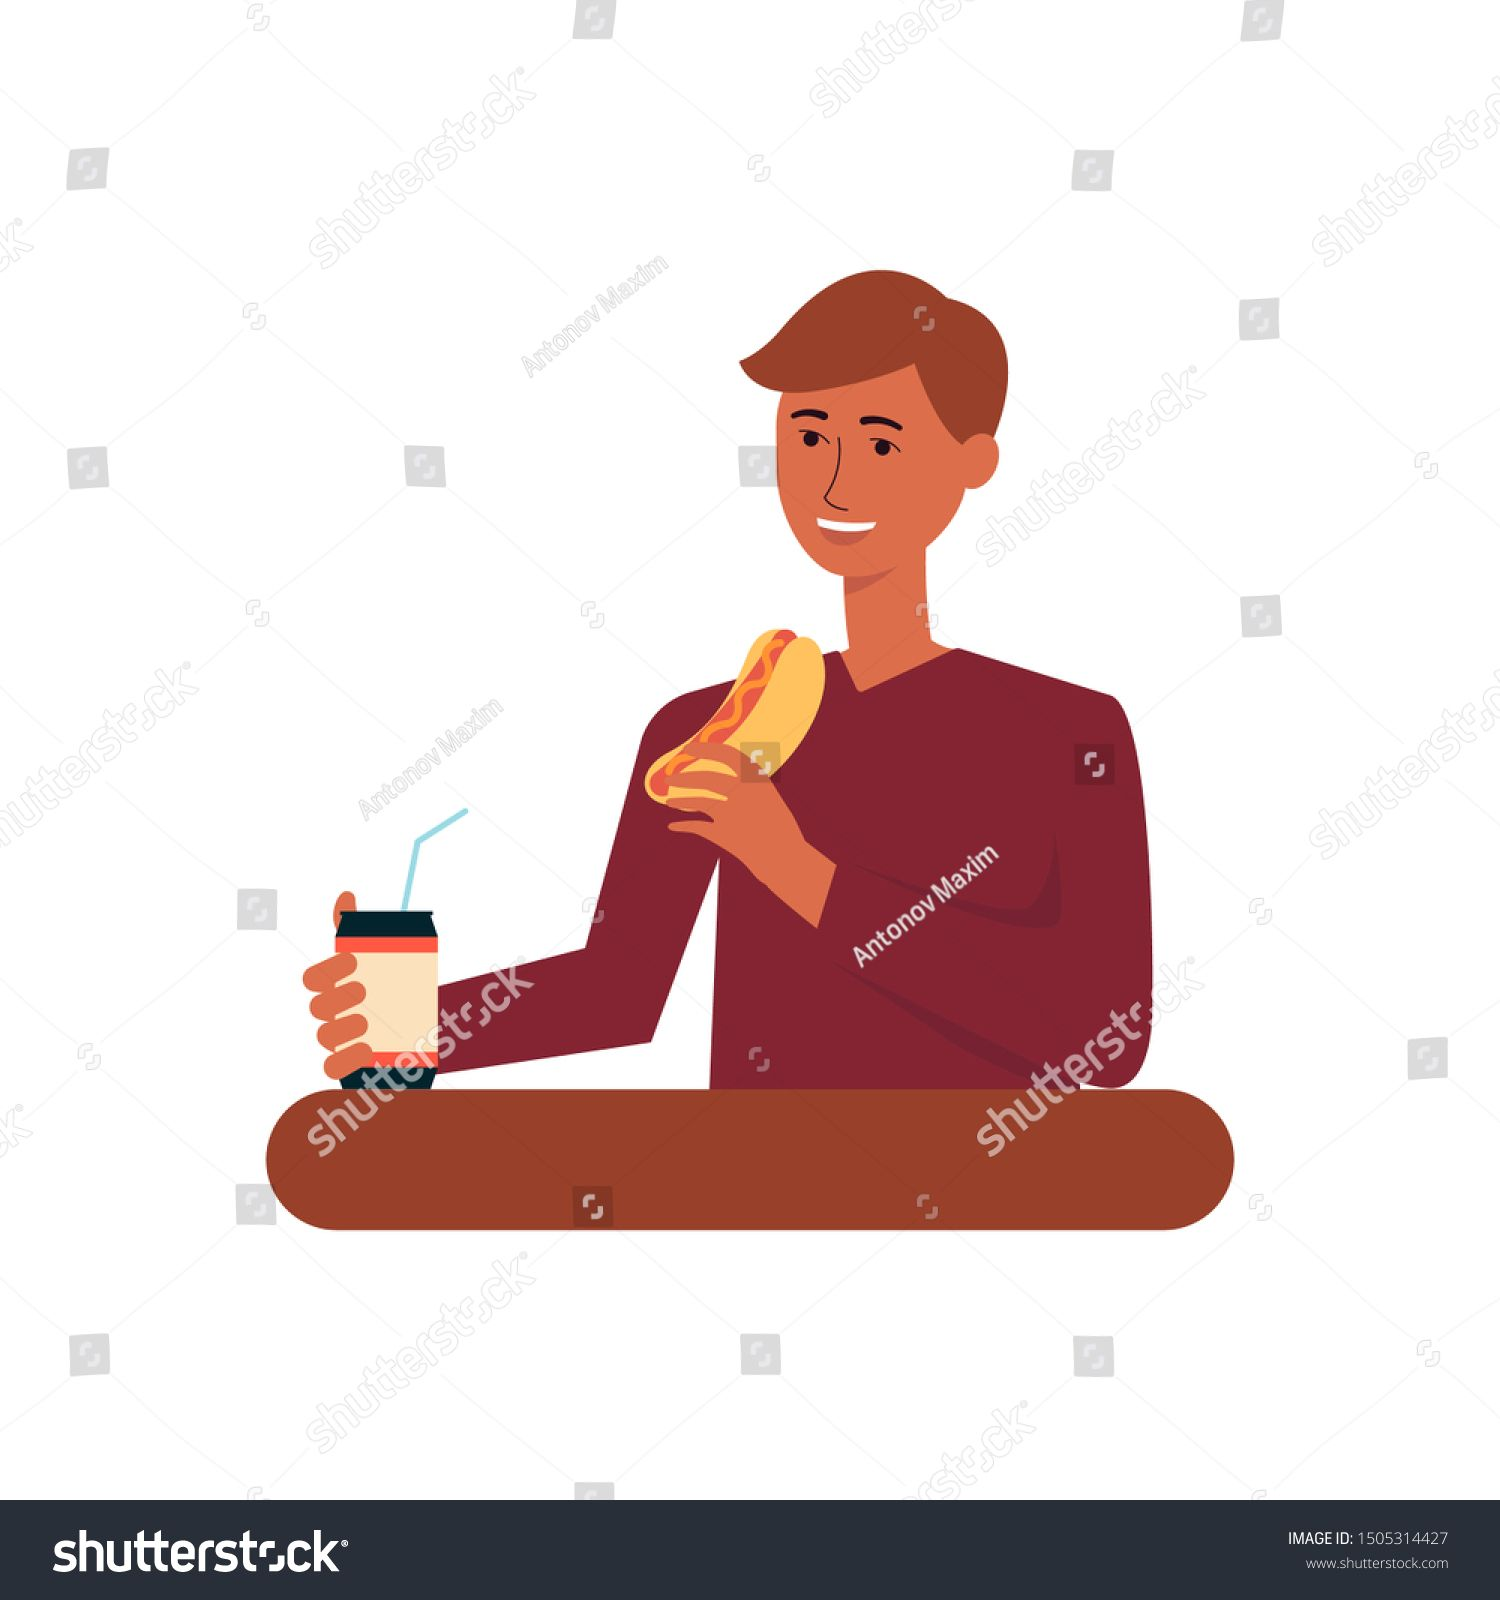 Young man eating fast food meal, adult male cartoon character drinking soda and eating hot dog, happy person having lunch - isolated flat vector illustration on white background #Sponsored , #sponsored, #male#adult#cartoon#drinking